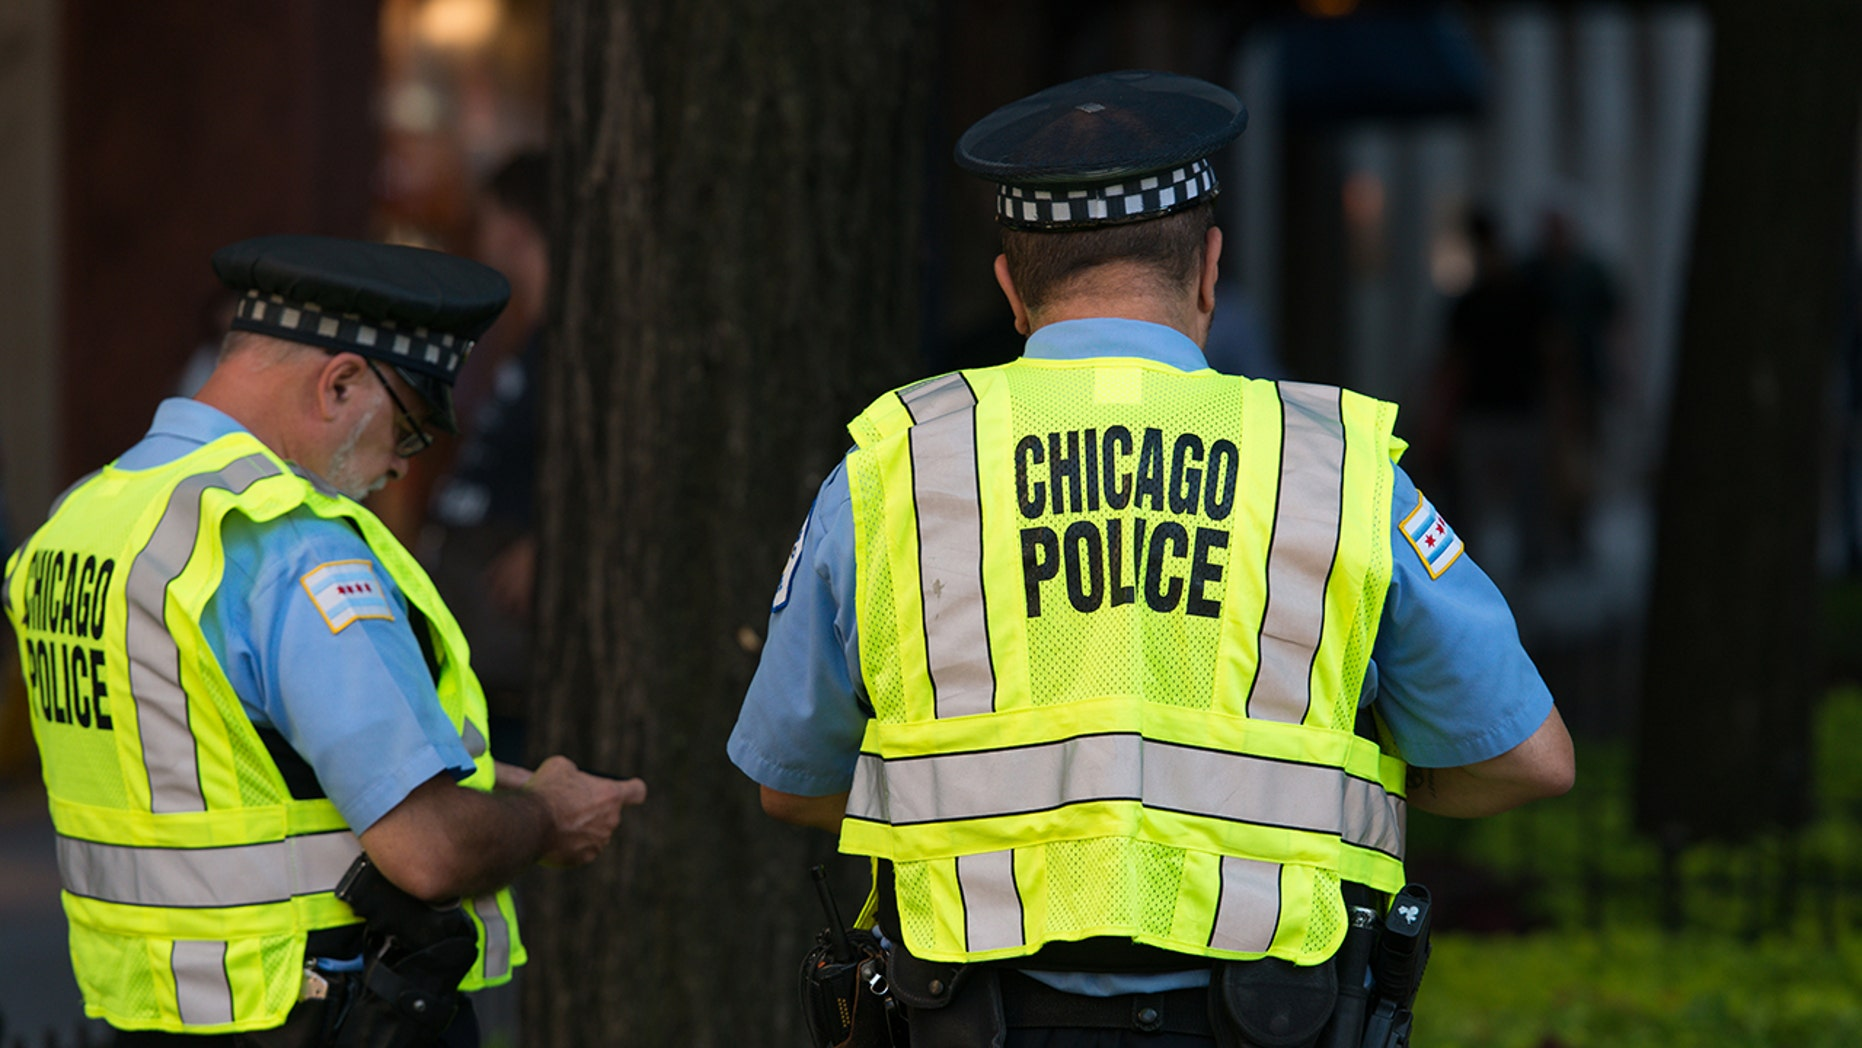 Westlake Legal Group 59b9300d-Chicago-police Man arrested after gunfire at Chicago hospital for military veterans, cops say Frank Miles fox-news/us/us-regions/midwest/illinois fox-news/us/military/veterans fox-news/us/crime/chicagos-crime-wave fox news fnc/us fnc article 966ef6e1-35c4-585e-93e1-057f7aff8fd8